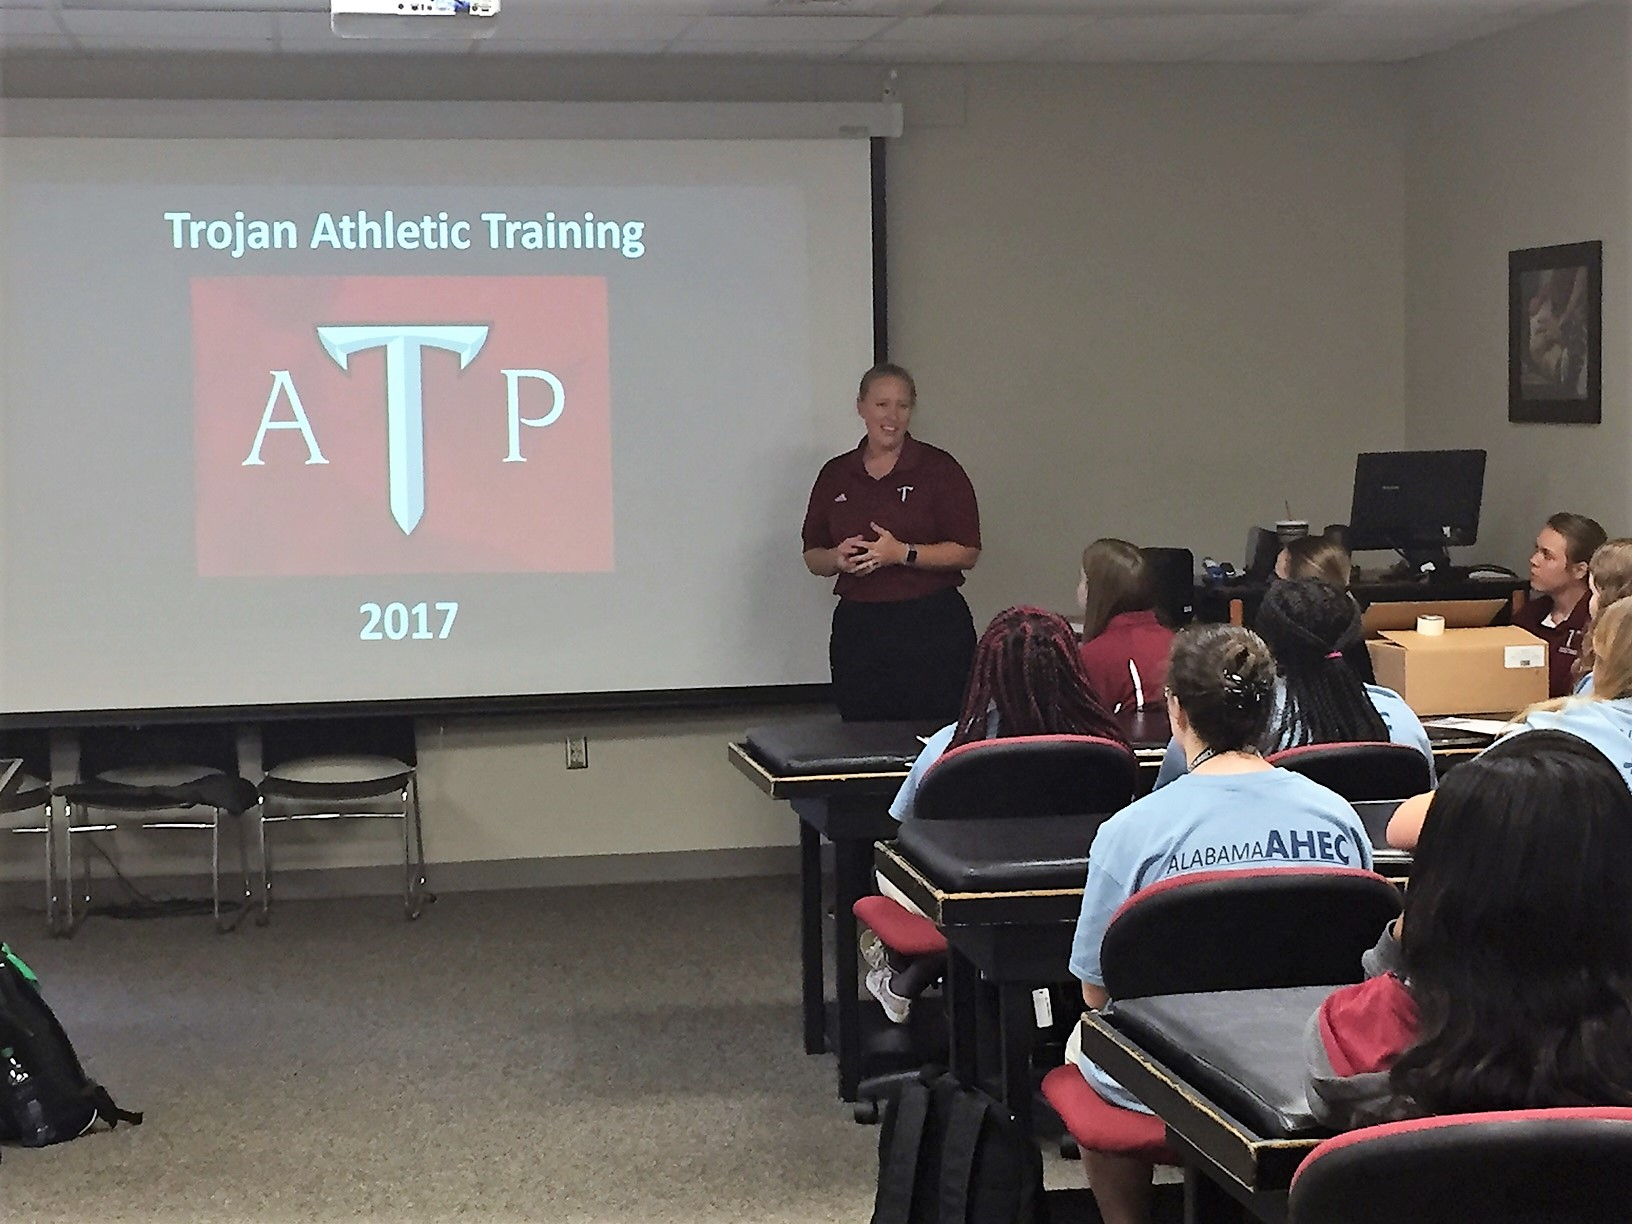 Troy Athletic Training